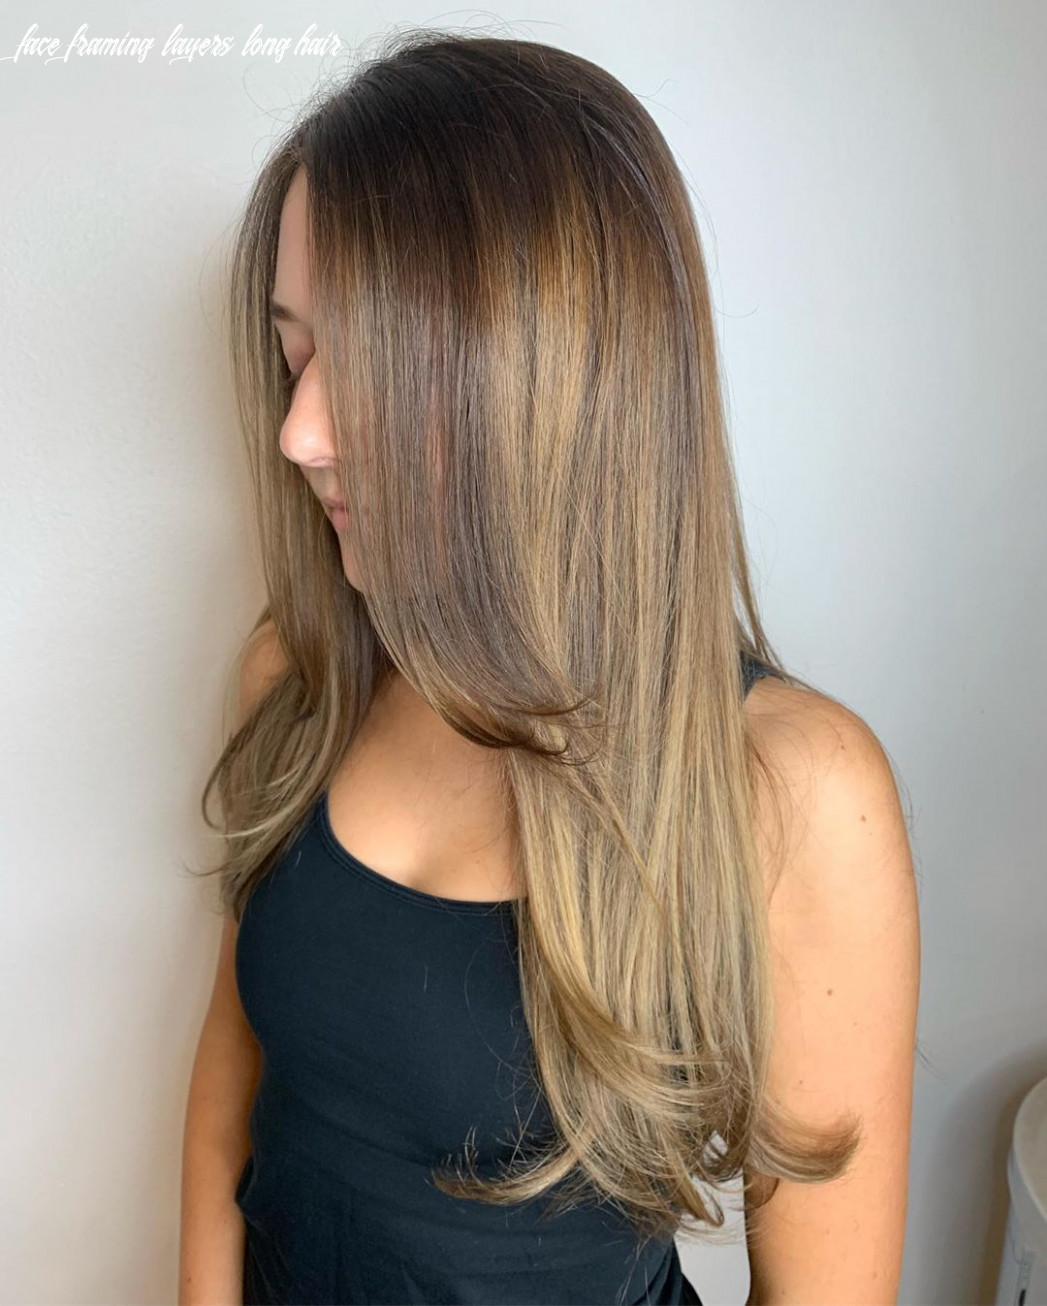 10 best layered haircuts and hairstyles for 10 hair adviser face framing layers long hair